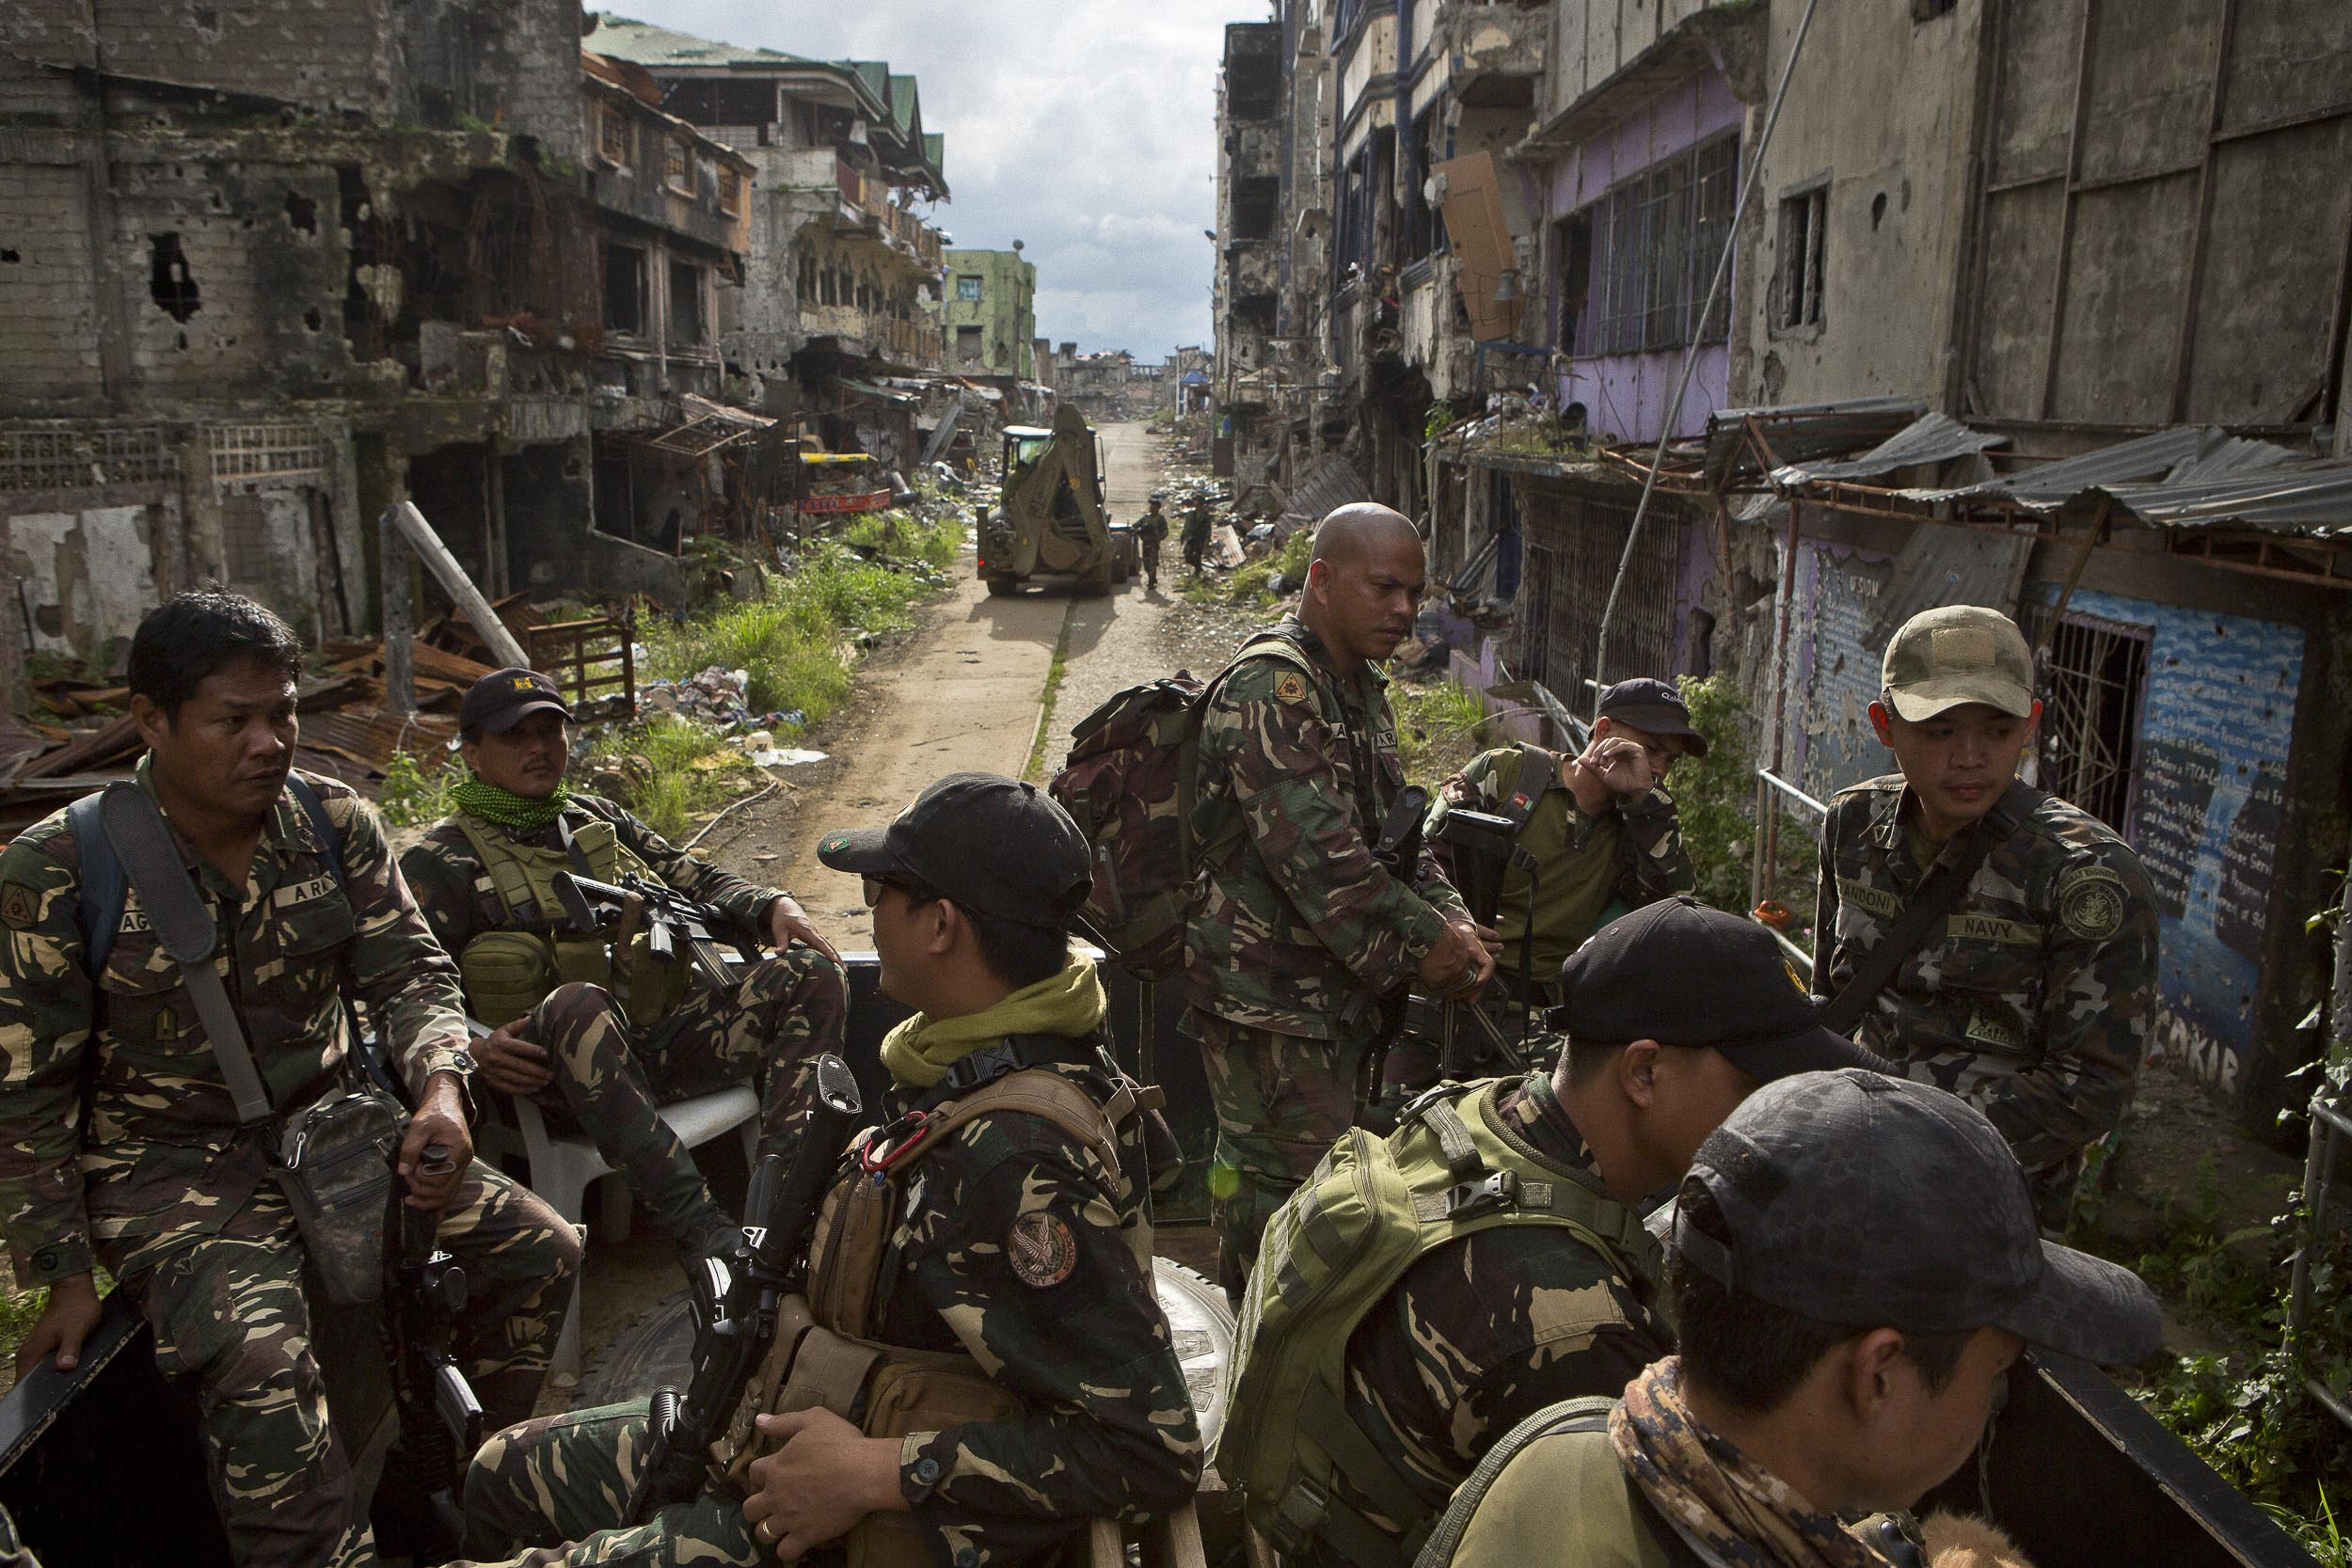 Members of a military joint task force working to clear the main battle area of Marawi of explosives ride in convoy out of the main battle area and back to base.